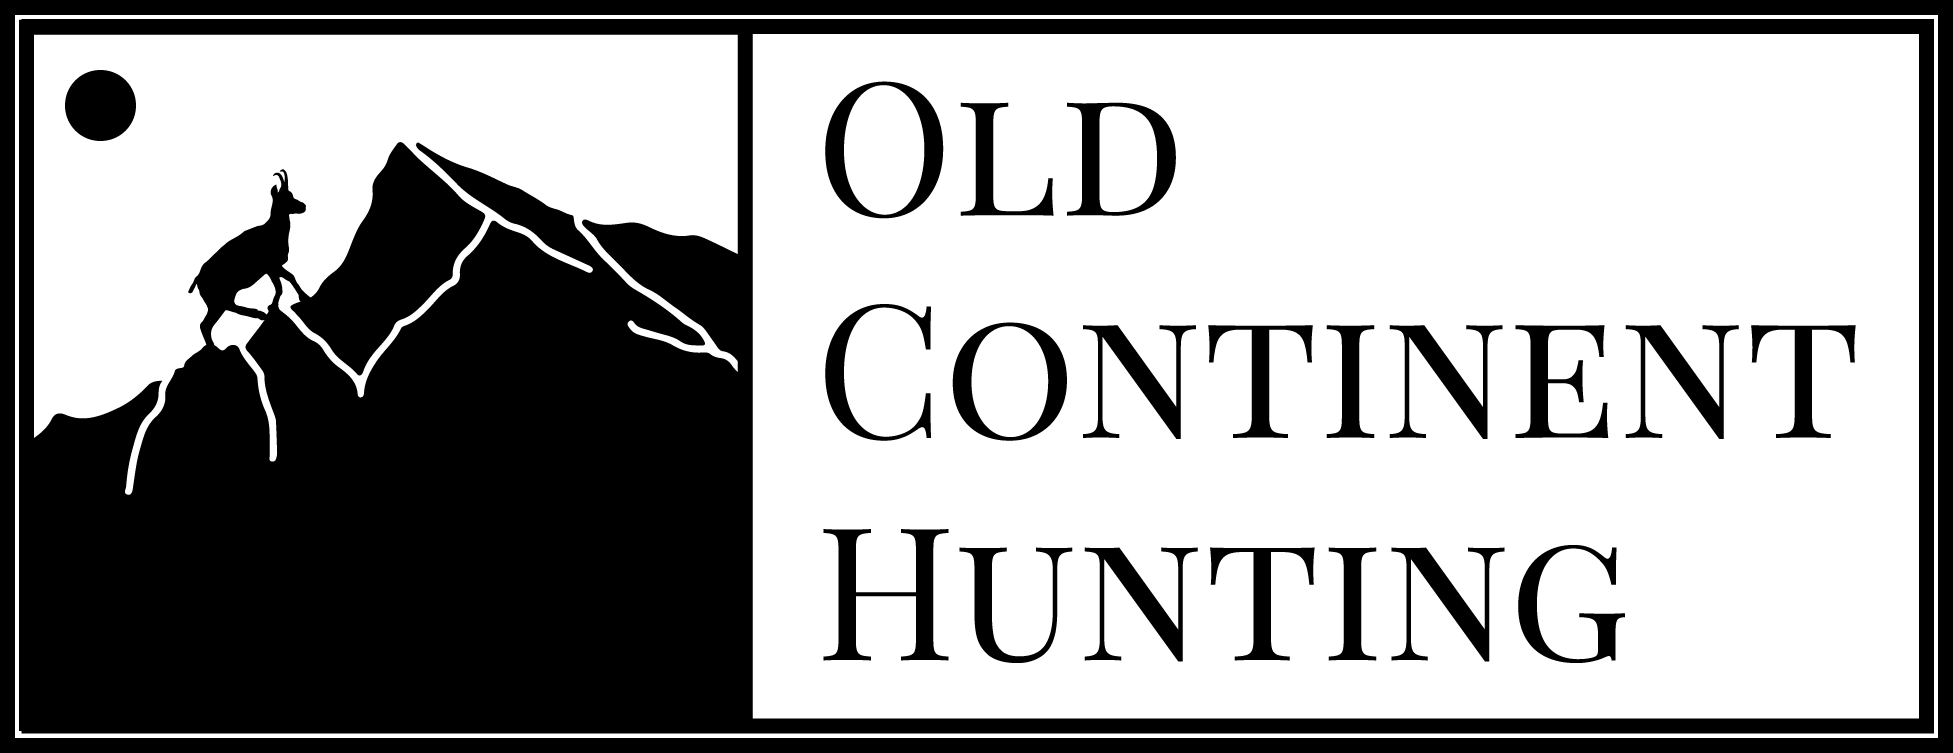 Old Continent Hunting